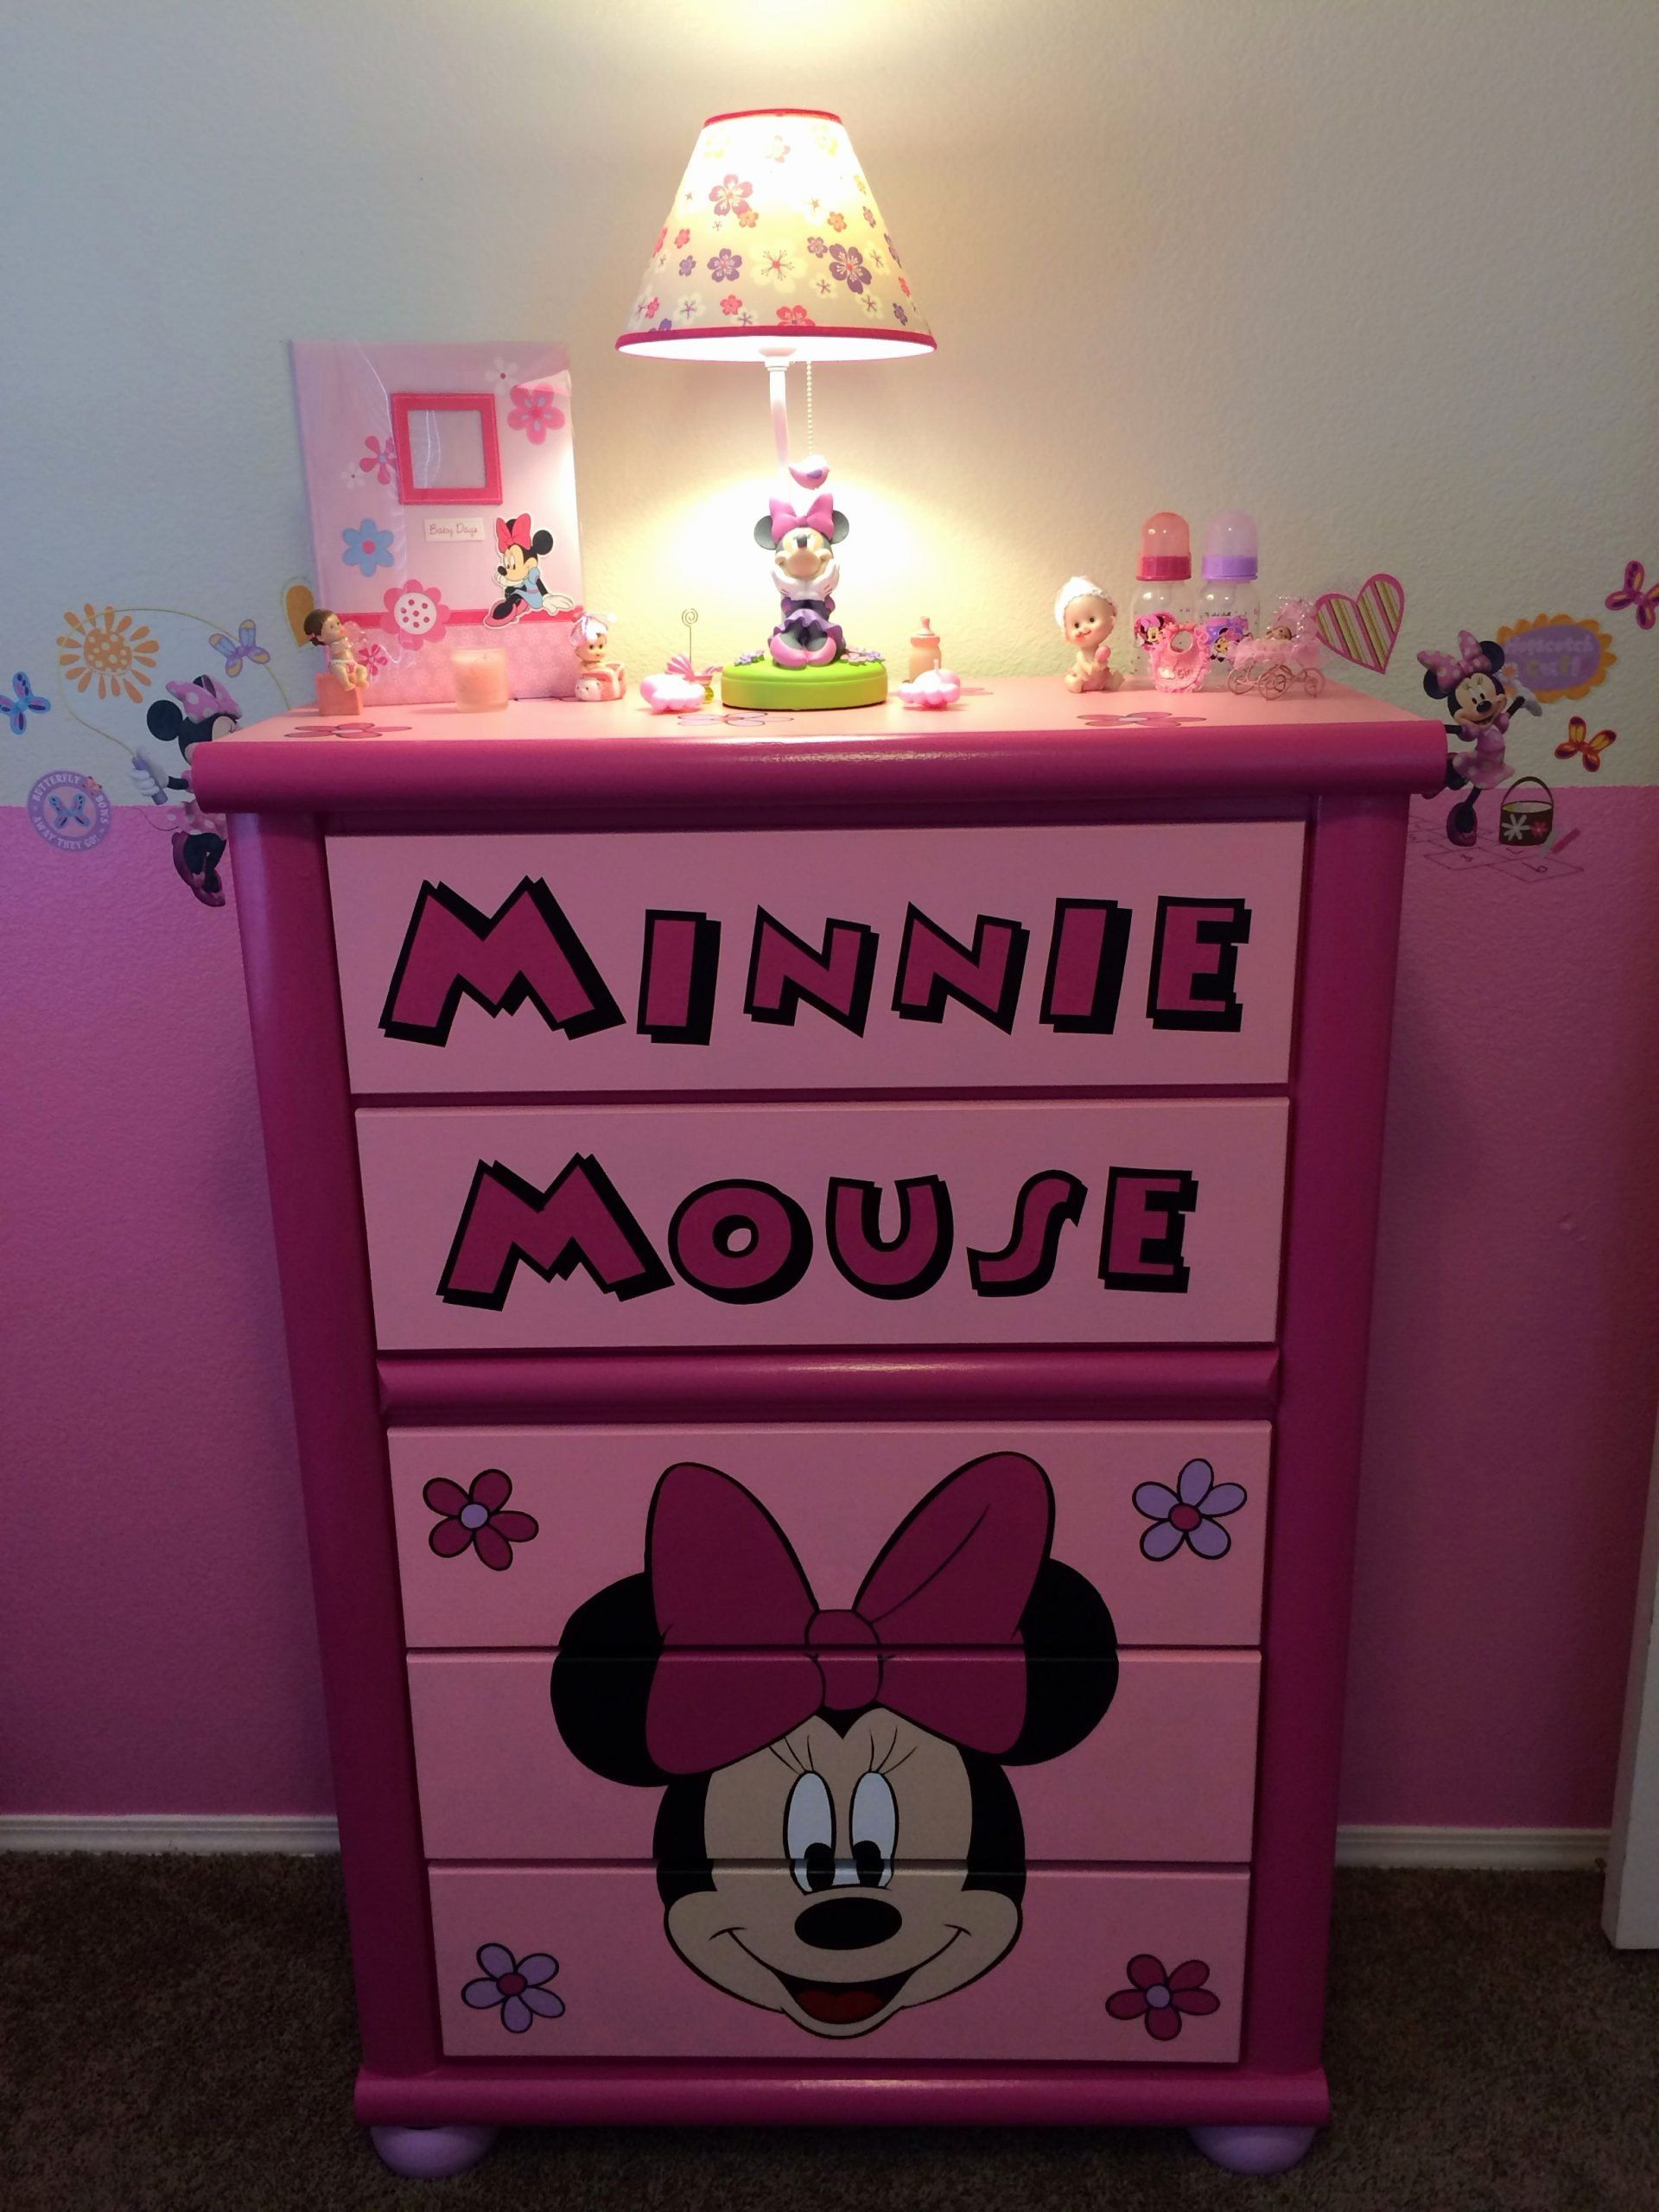 Minnie Mouse Bedroom Ideas Luxury Custom Minnie Dresser Accessories In 2020 Minnie Mouse Room Decor Minnie Mouse Bedroom Minnie Mouse Baby Room